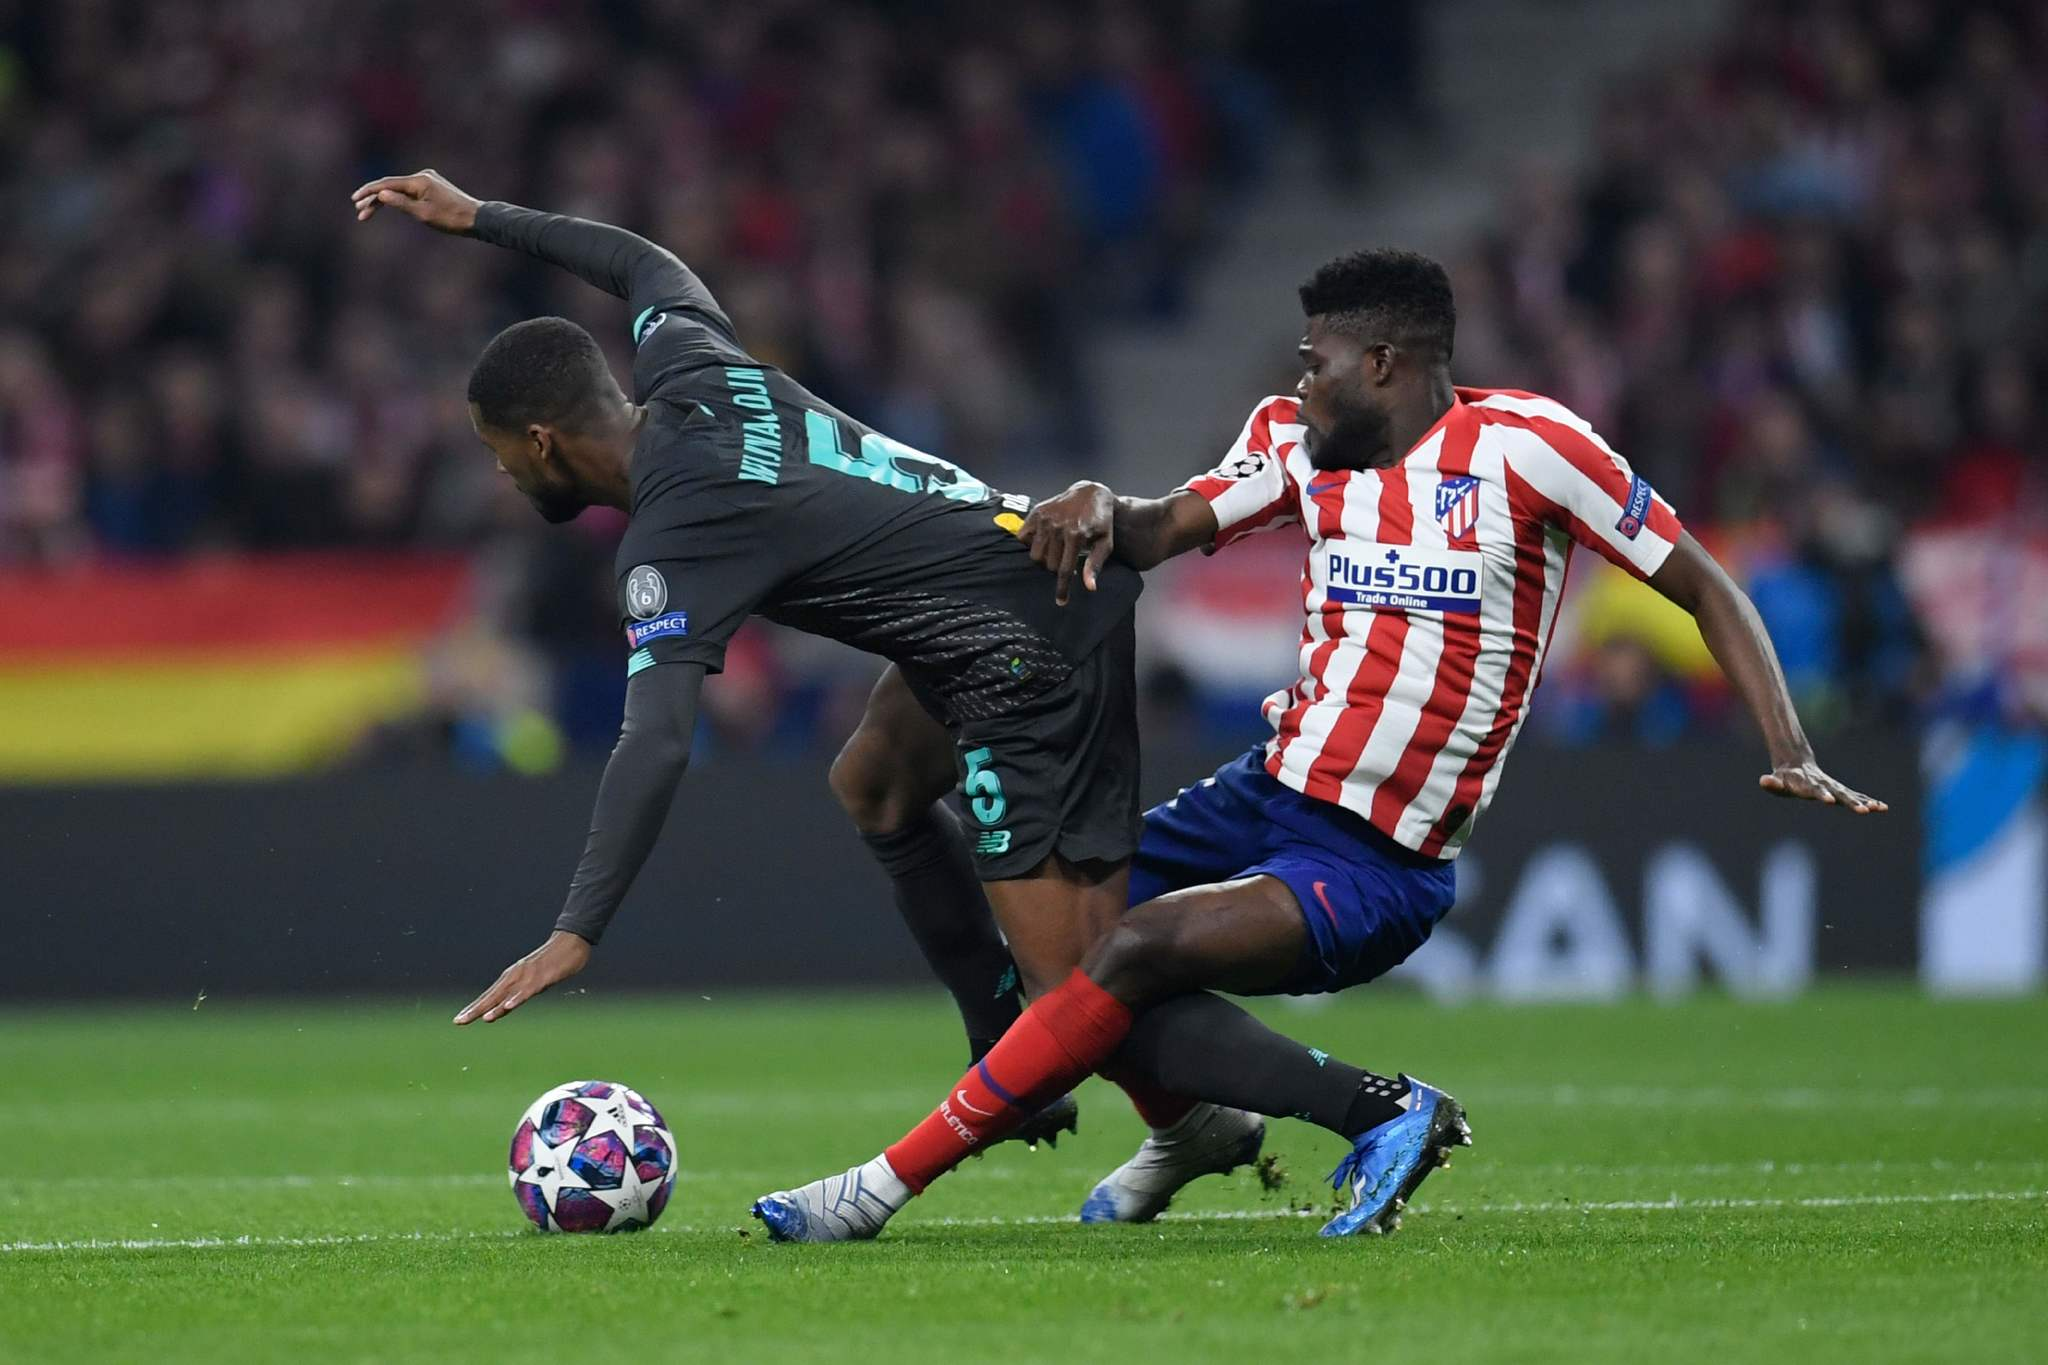 Atletico Madrids Ghanaian midfielder lt;HIT gt;Thomas lt;/HIT gt; Partey (R) challenges Liverpools Dutch midfielder Georginio Wijnaldum during the UEFA Champions League, round of 16, first leg football match between Club Atletico de Madrid and Liverpool FC at the Wanda Metropolitano stadium in Madrid on February 18, 2020. (Photo by OSCAR DEL POZO / AFP)